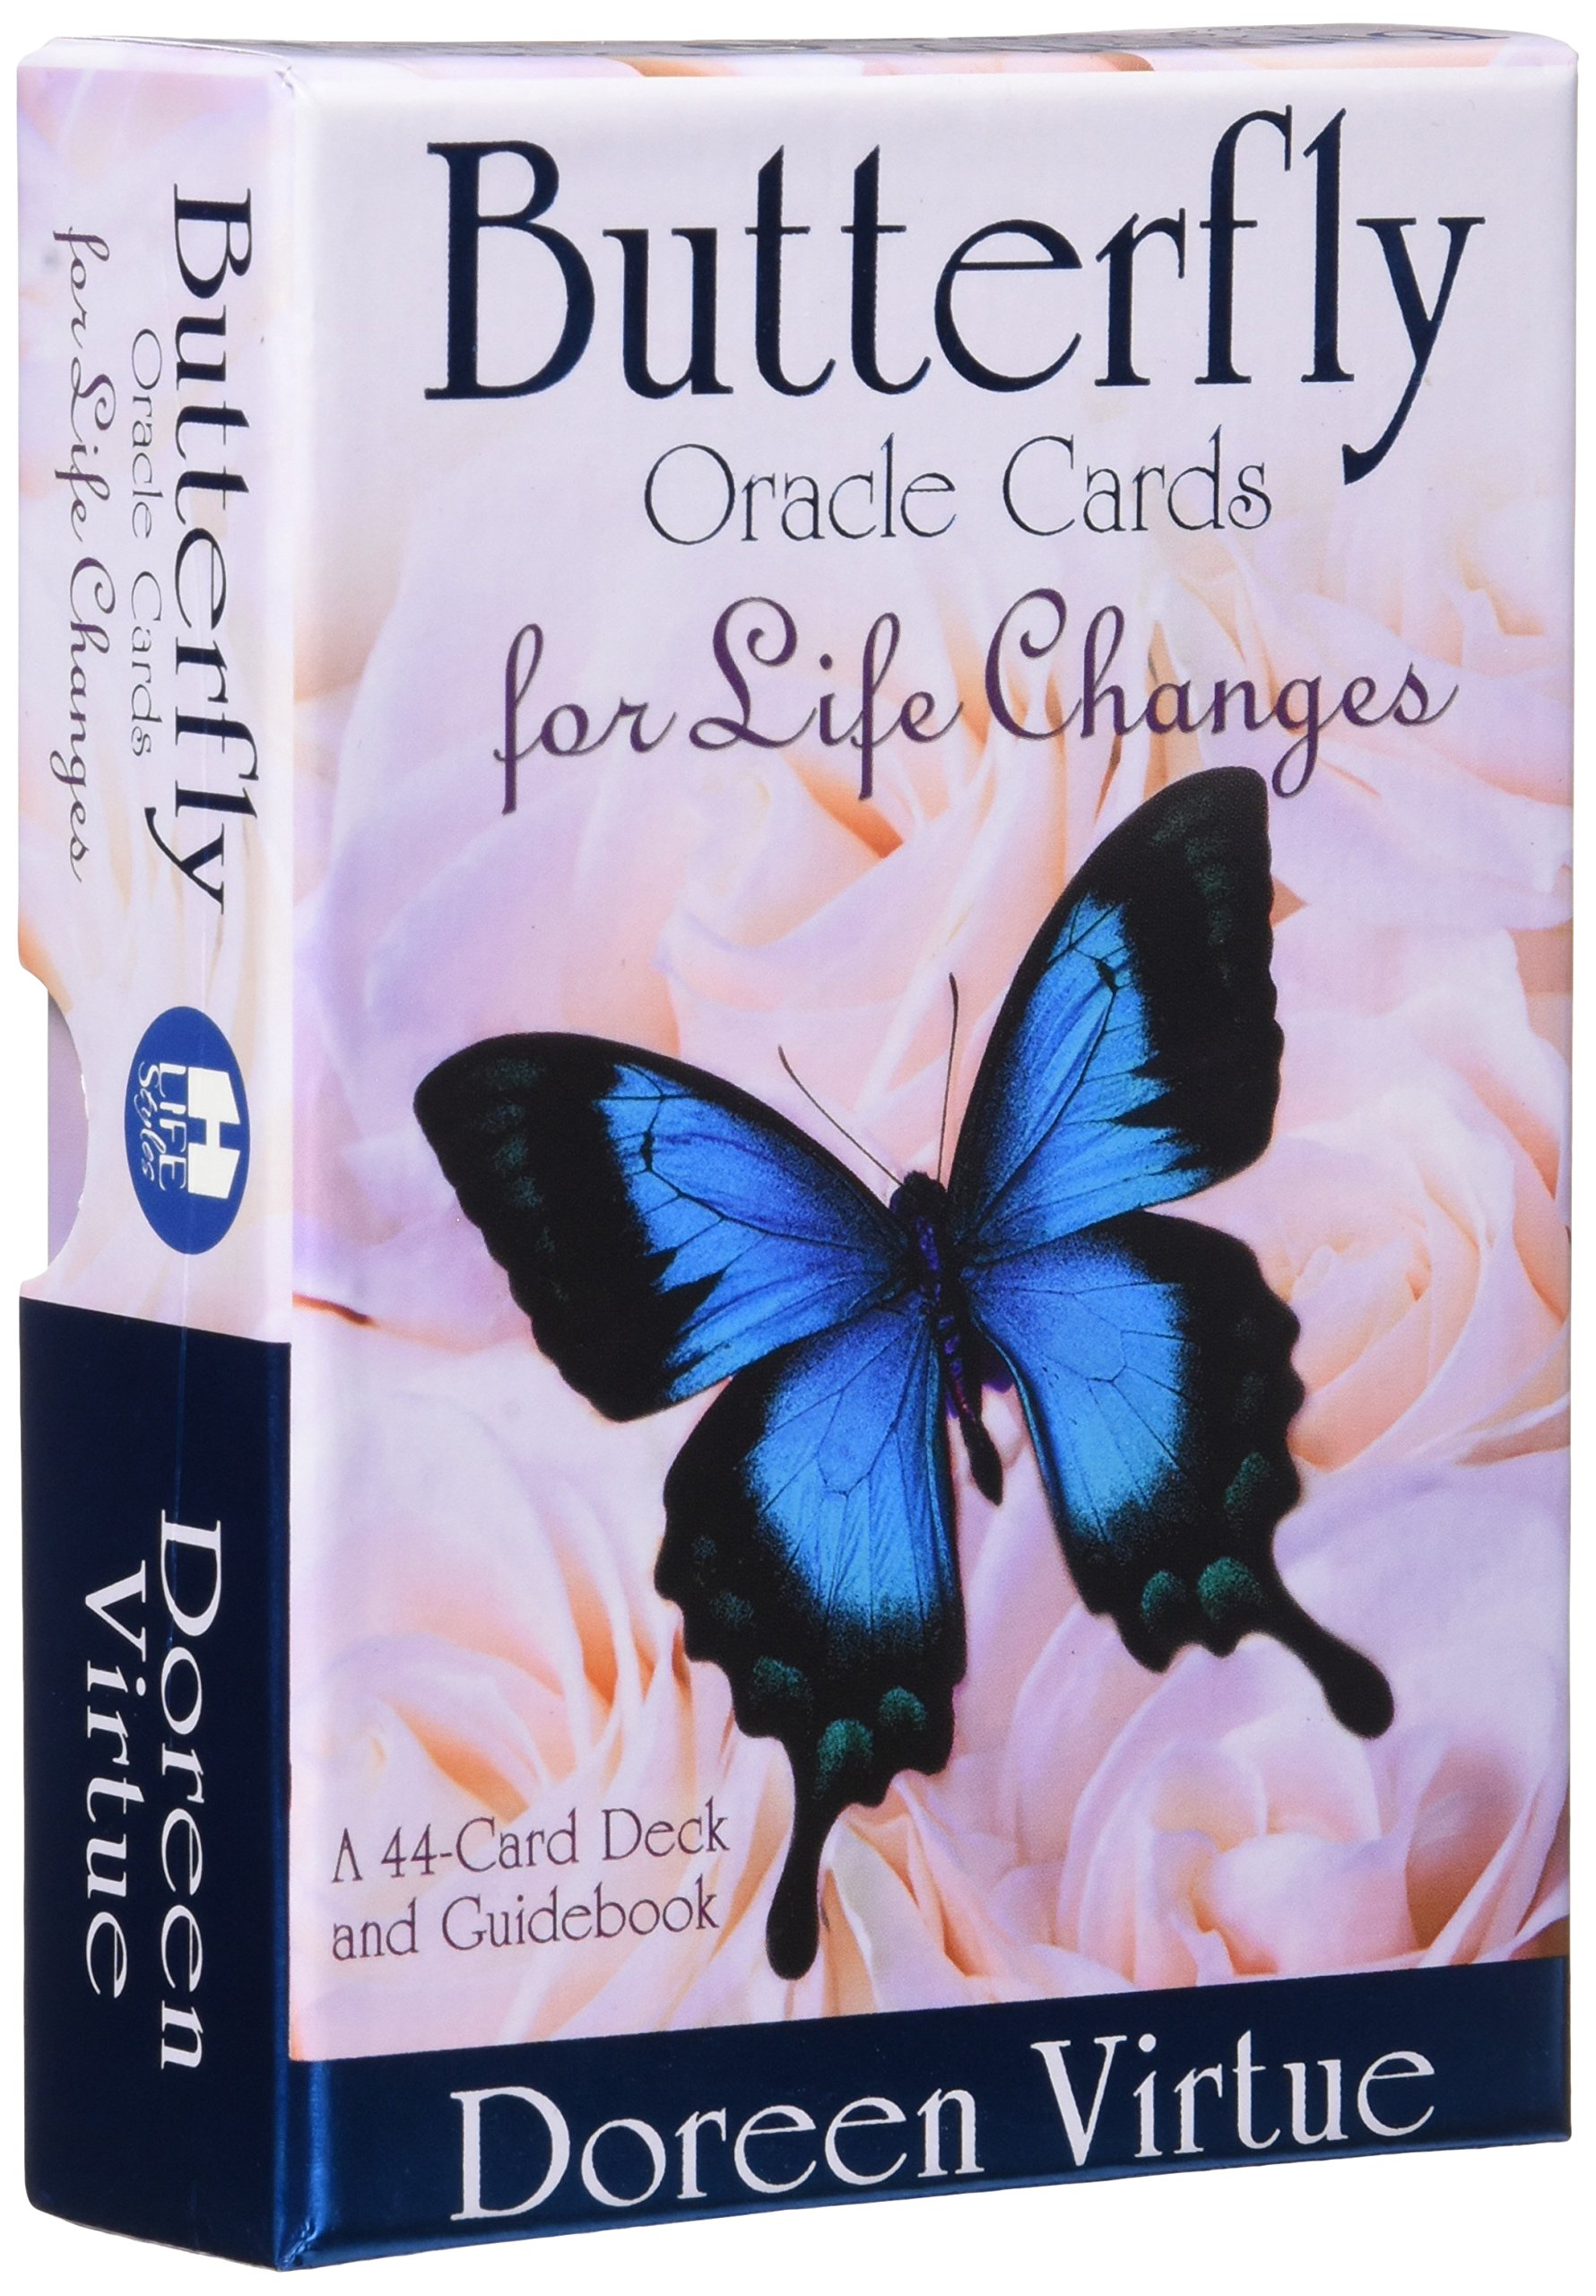 Butterfly Oracle Cards For Life Changes: A 44card Deck And Guidebook:  Doreen Virtue: 9781401950033: Amazon: Books